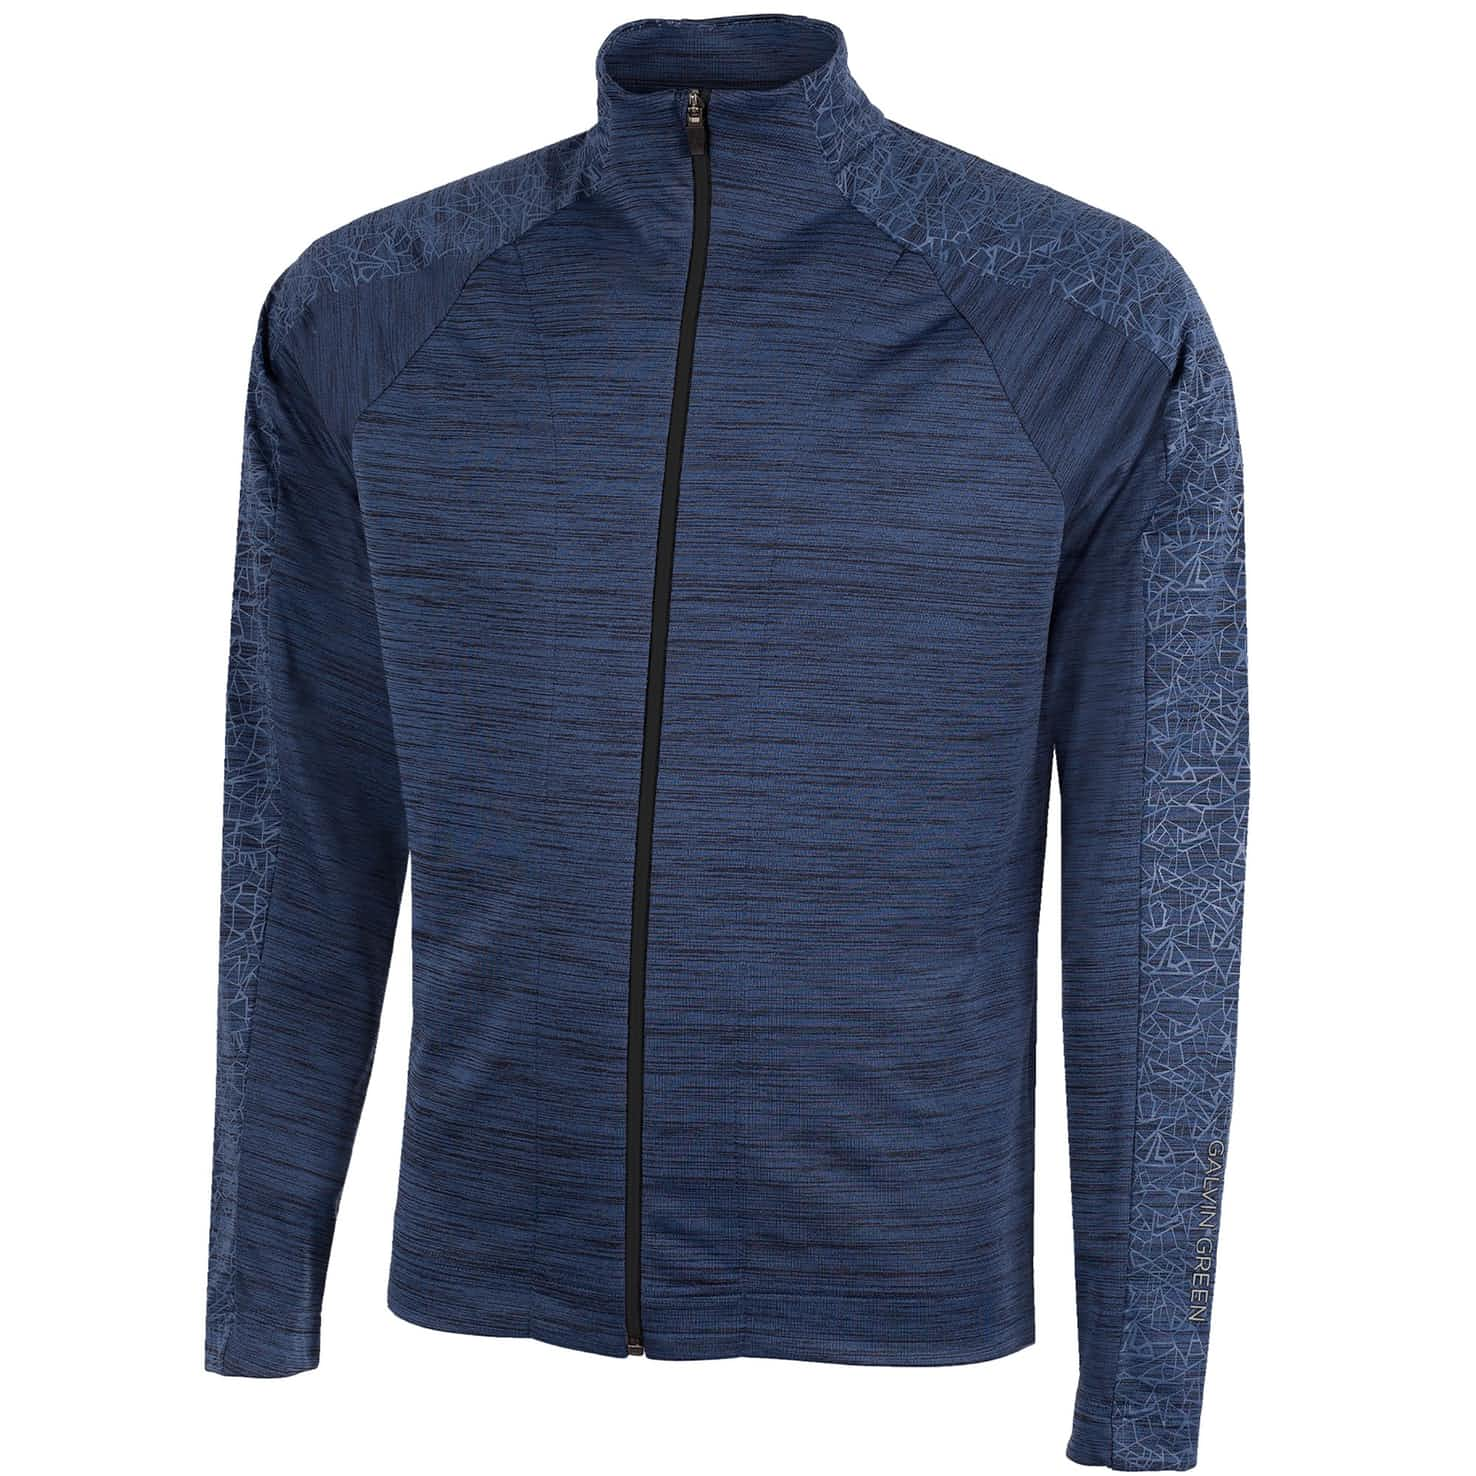 Declan Insula Full Zip Jacket Navy - SS20